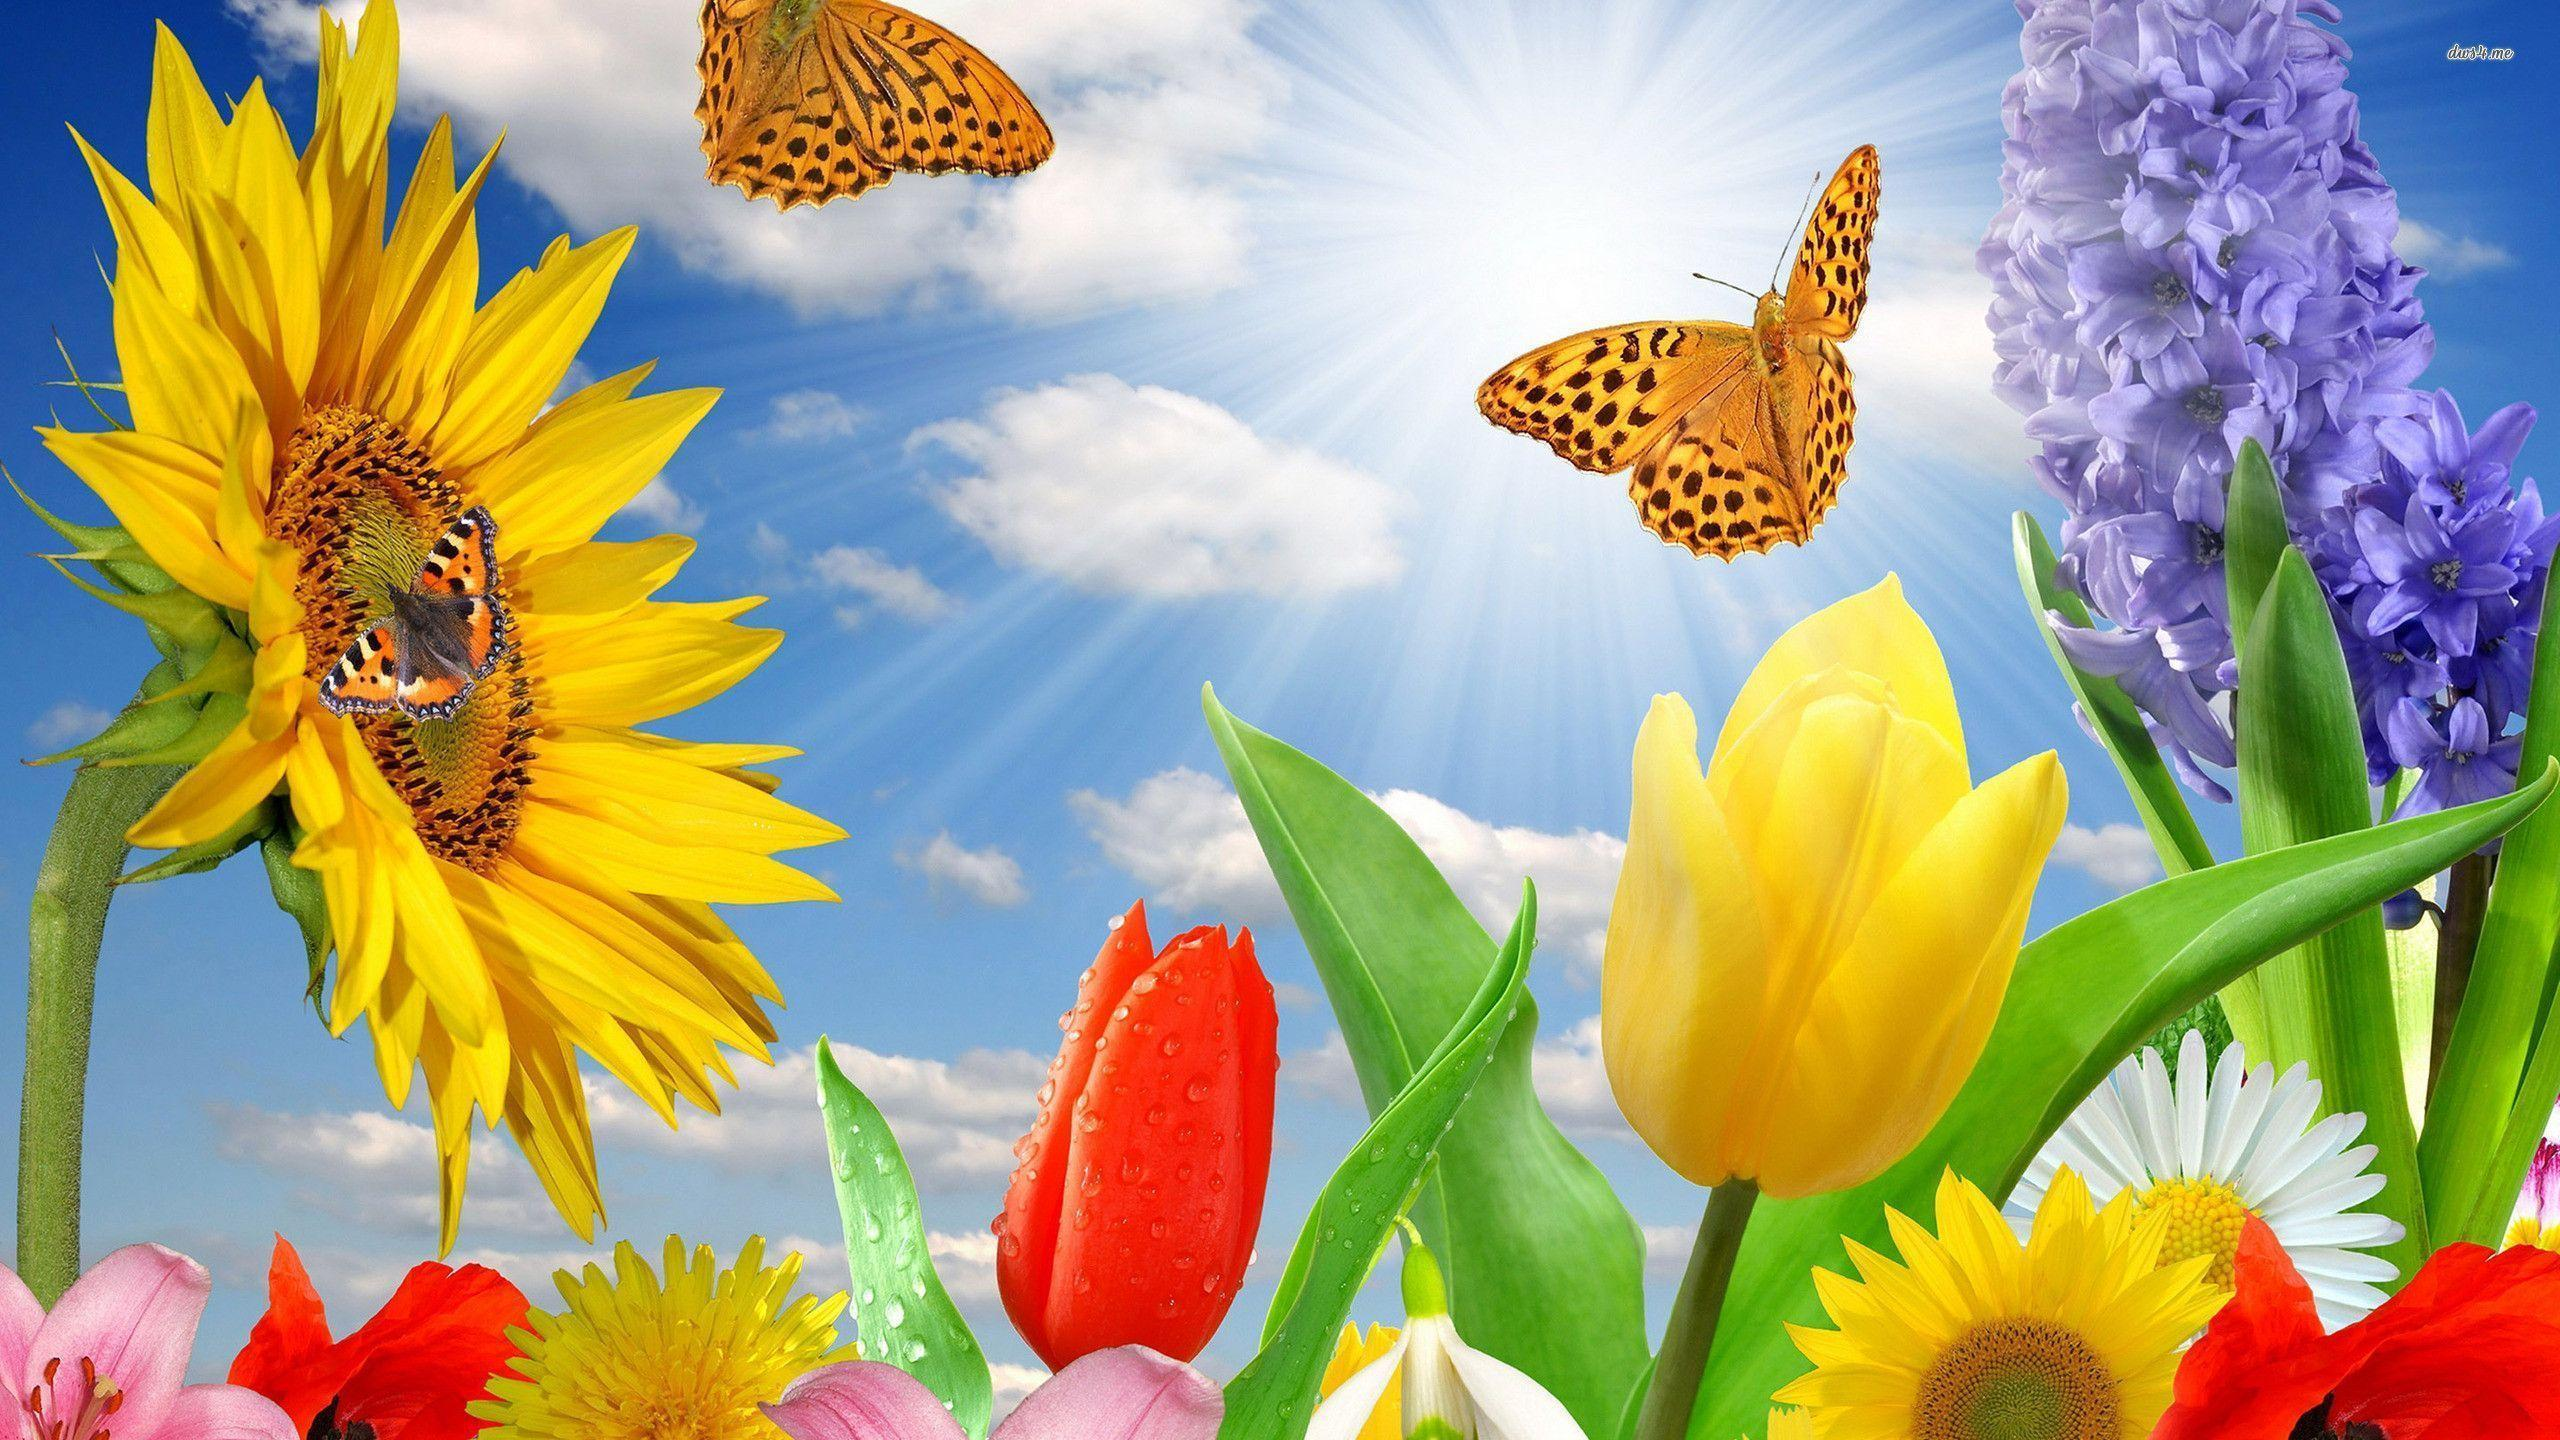 Beautiful Pictures Of Flowers And Butterflies Birds Butterflies Backgrounds Wallpaper Cave